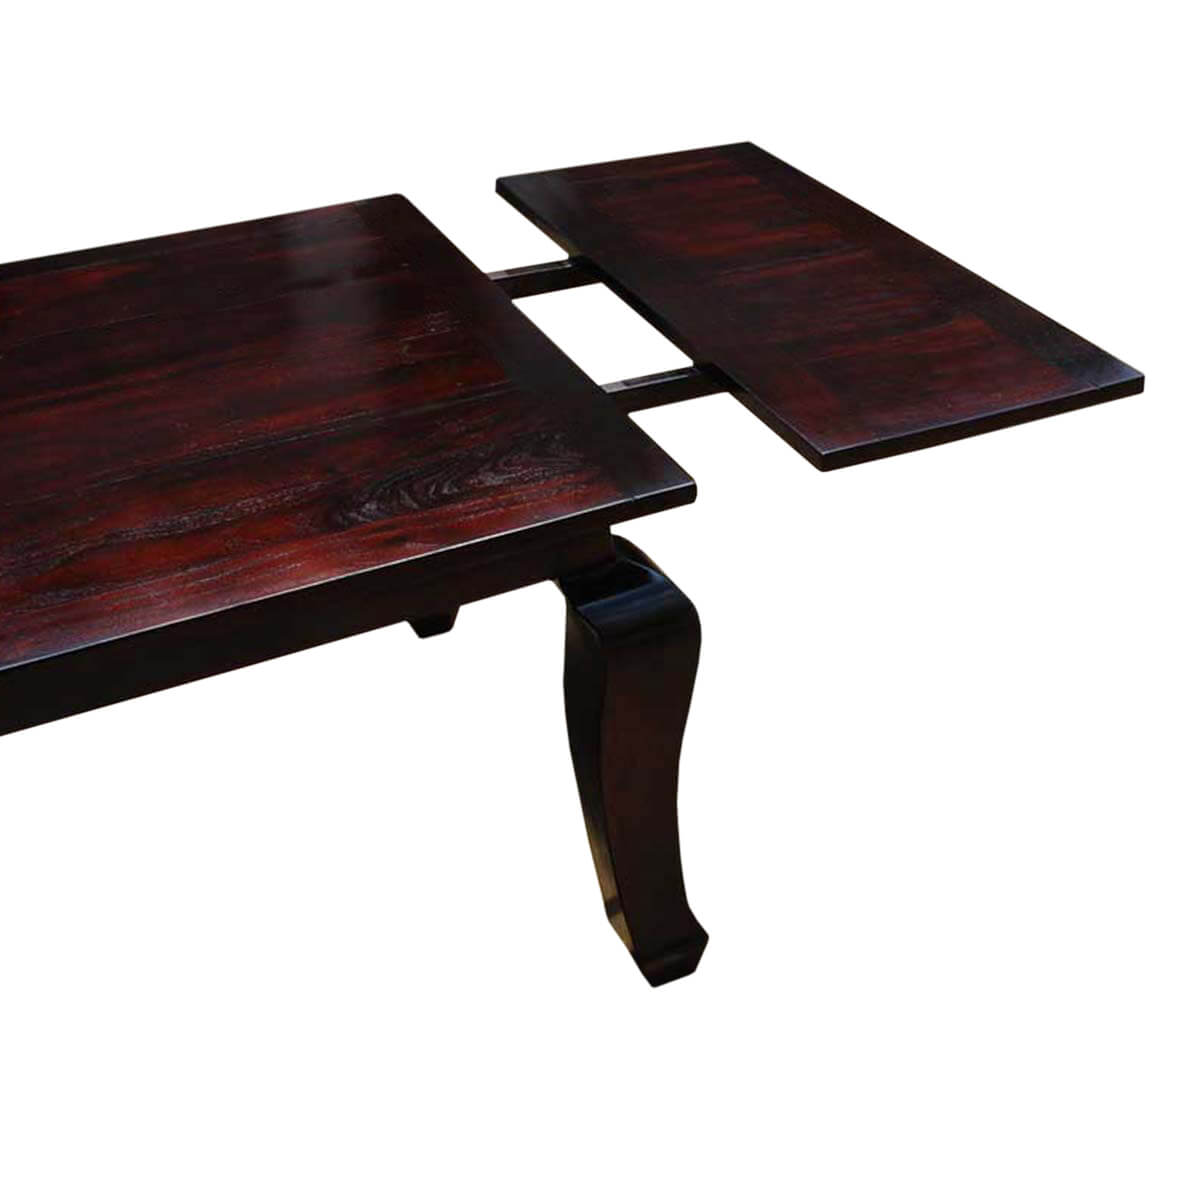 Solid Wood Cabriole Leg Dining Room Table with Extension  : 26963 from www.sierralivingconcepts.com size 1200 x 1200 jpeg 104kB